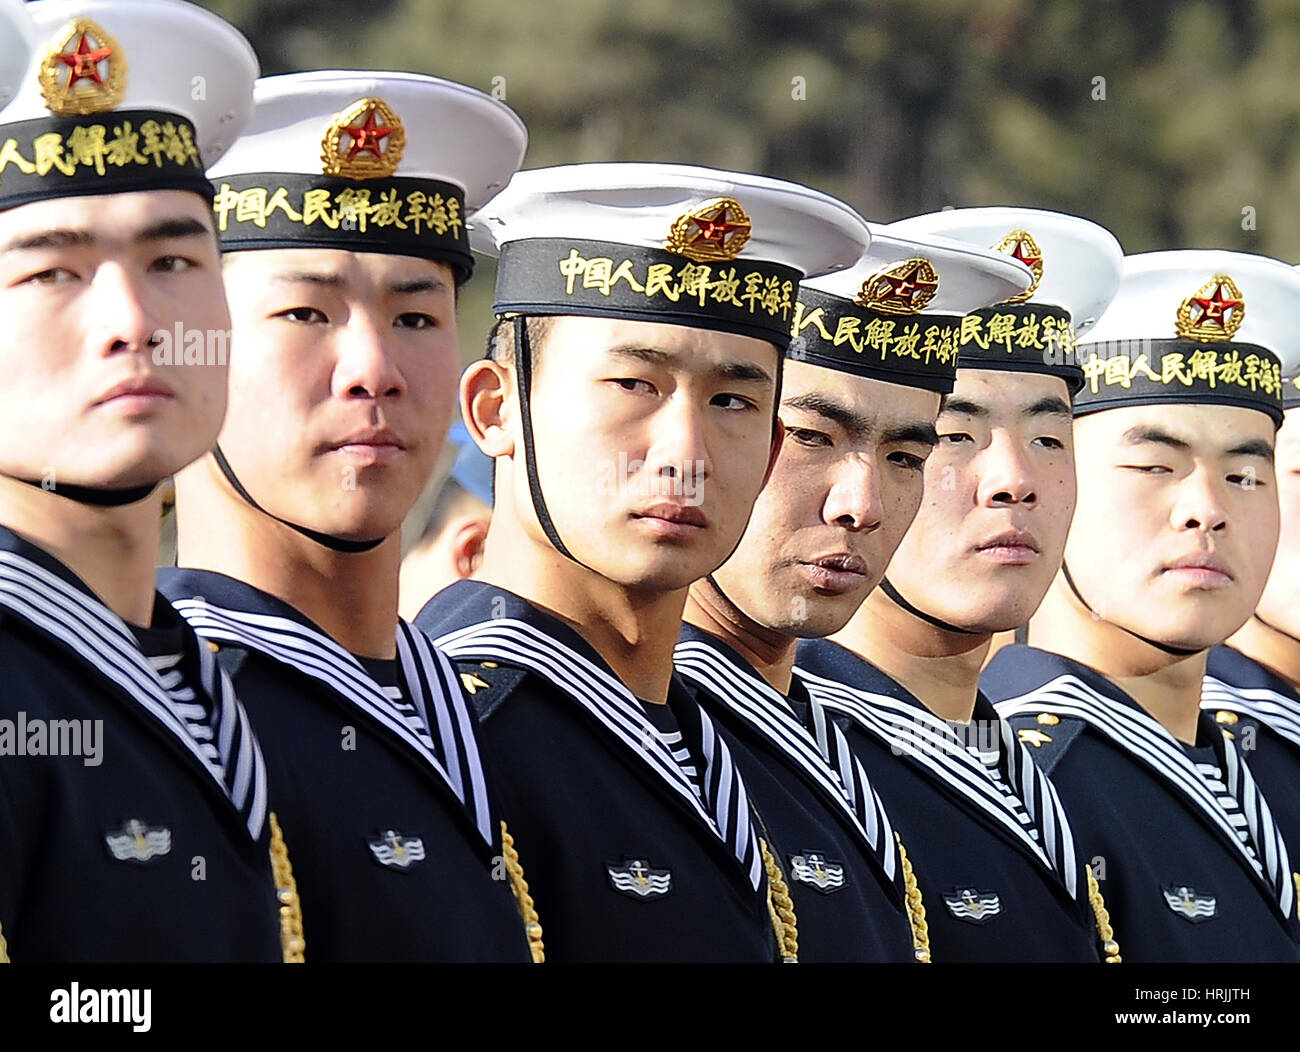 People's Liberation Army Navy, 2011 - Stock Image